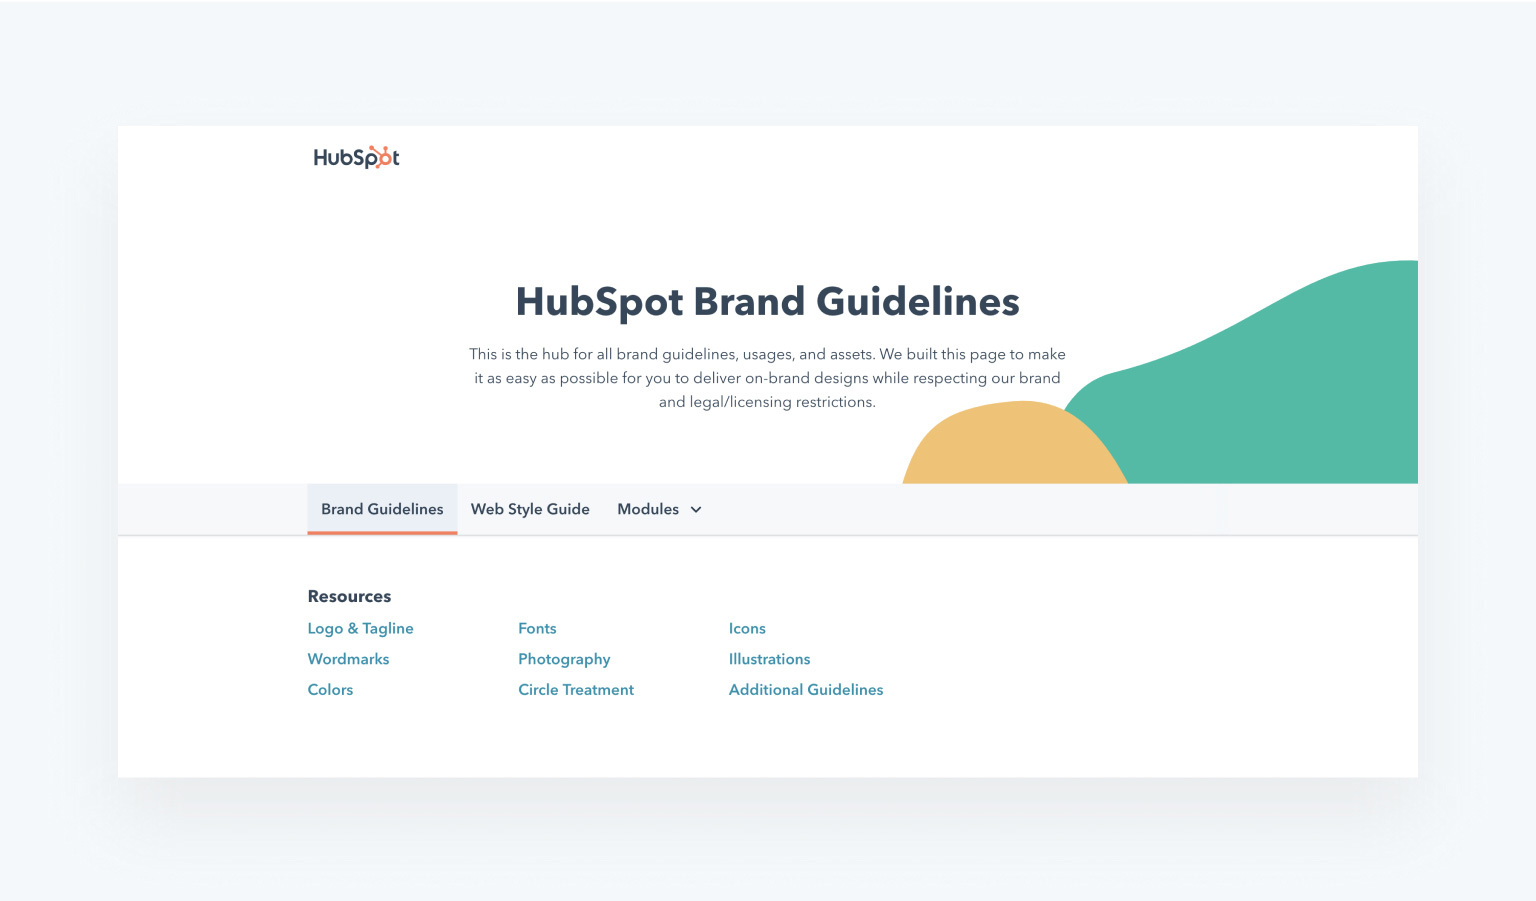 style guide example from HubSpot